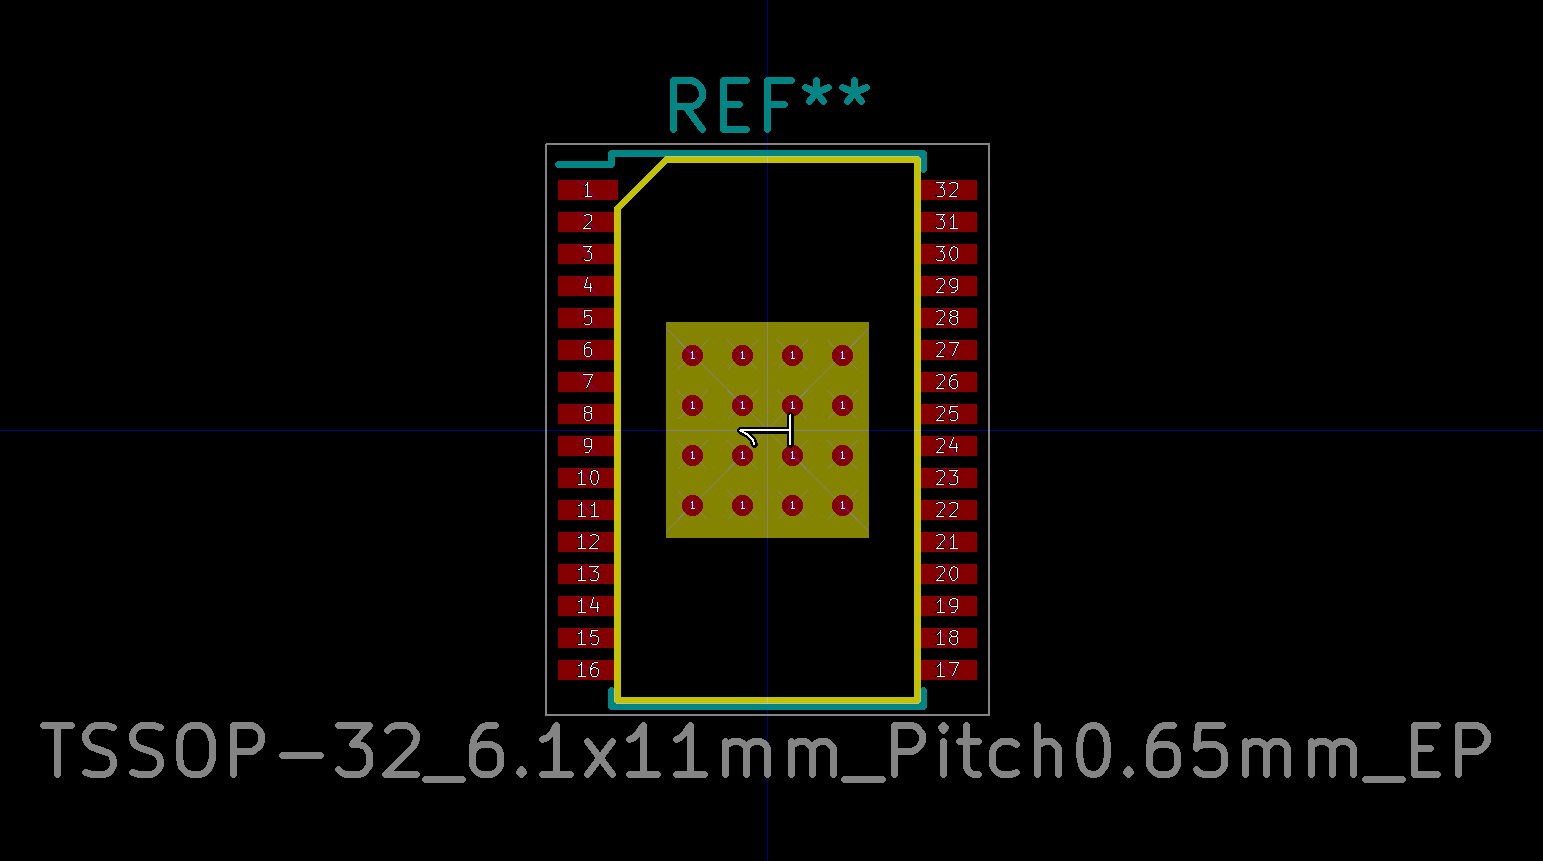 KiCad footprint for TSSOP-32 package, 6 1x11mm size, 0 65mm